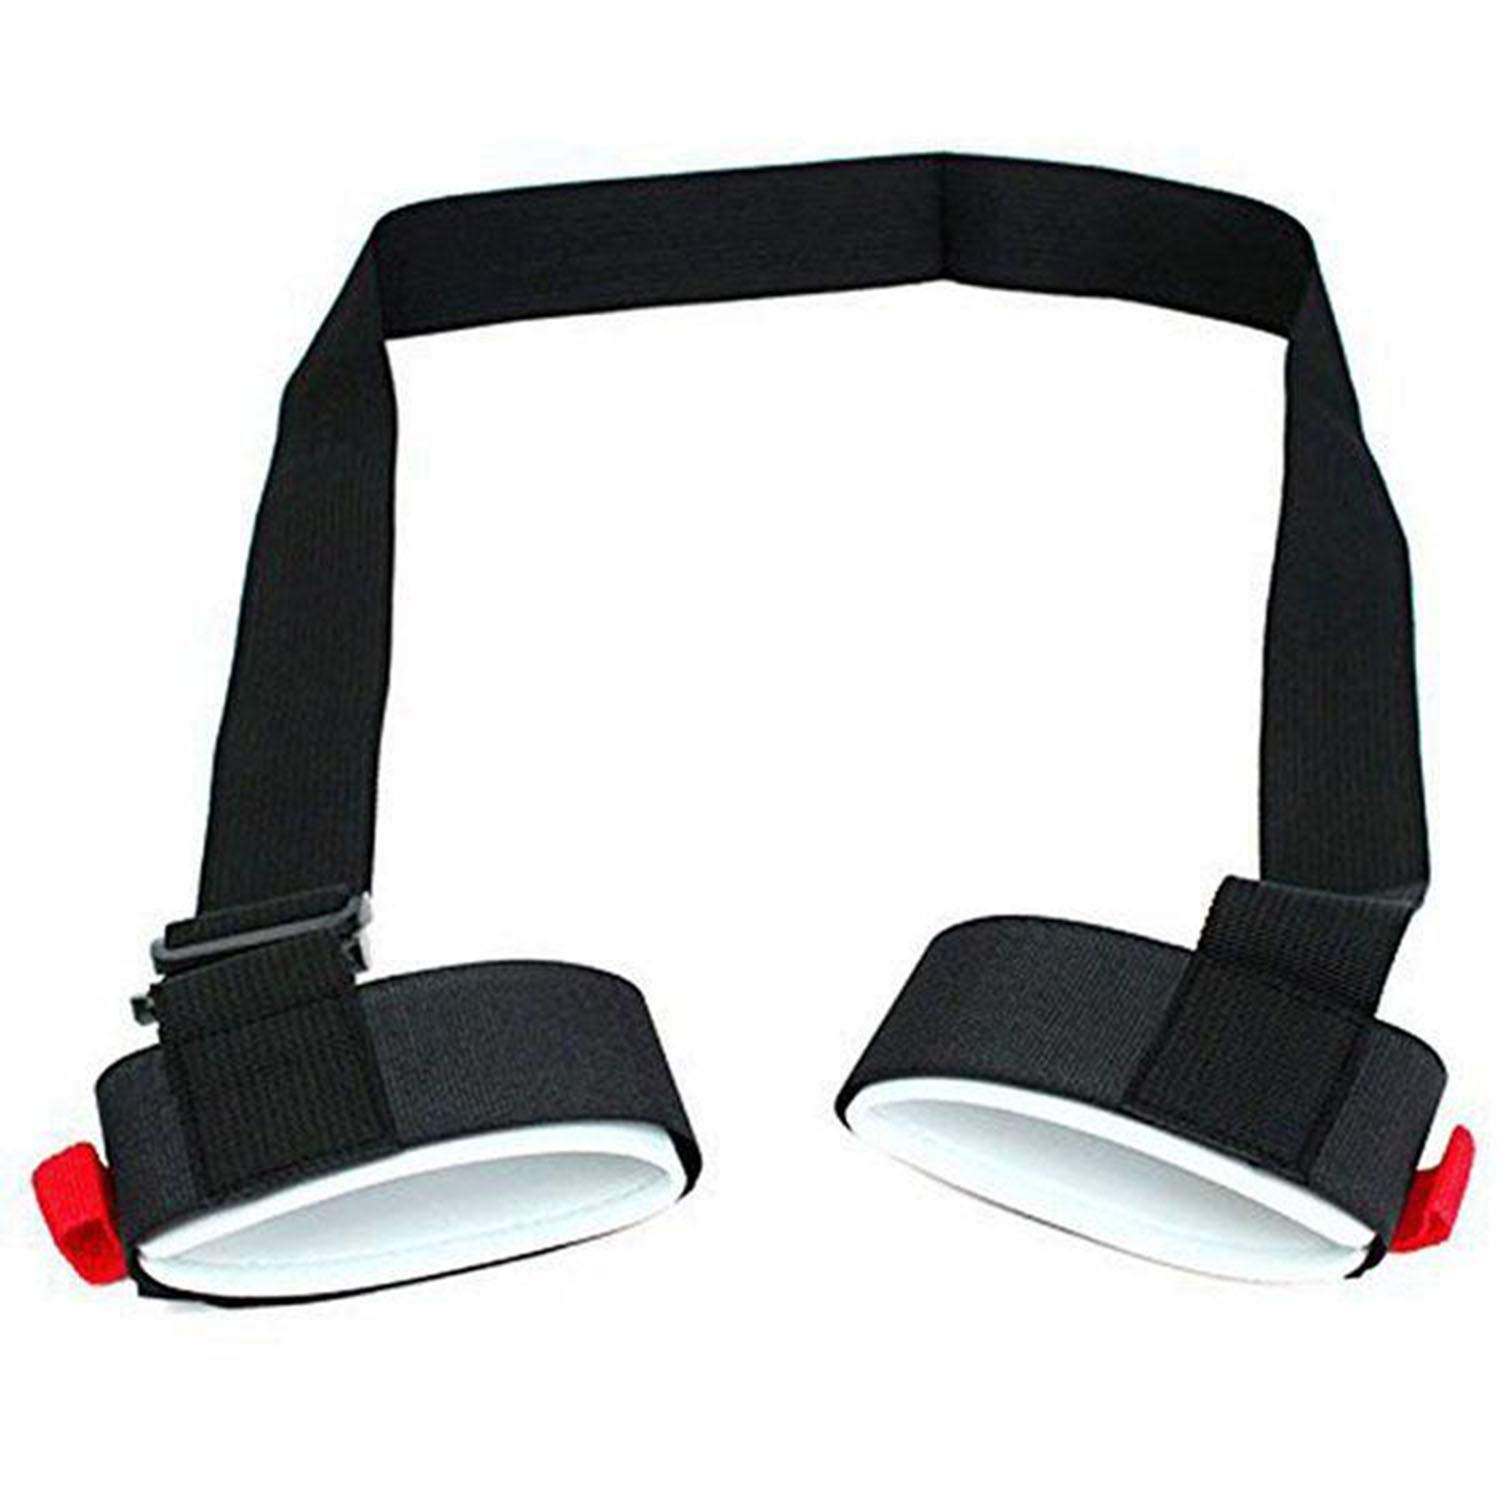 Adjustable Ski Shoulder Strap - Buy Ski Goggles Along